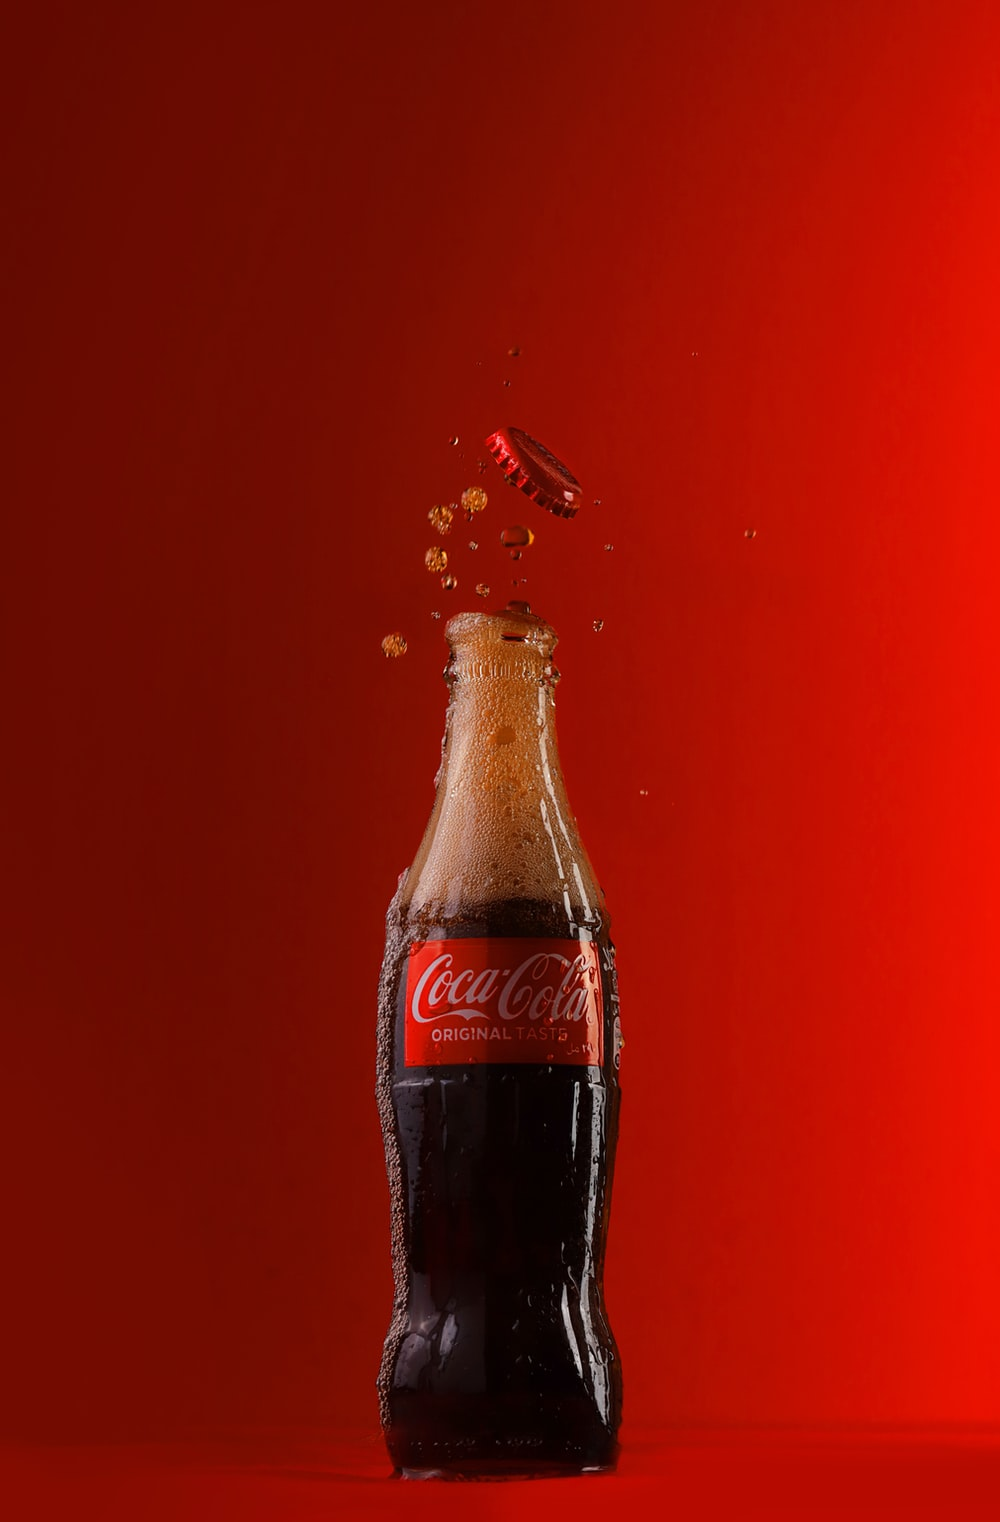 coca cola bottle on red textile